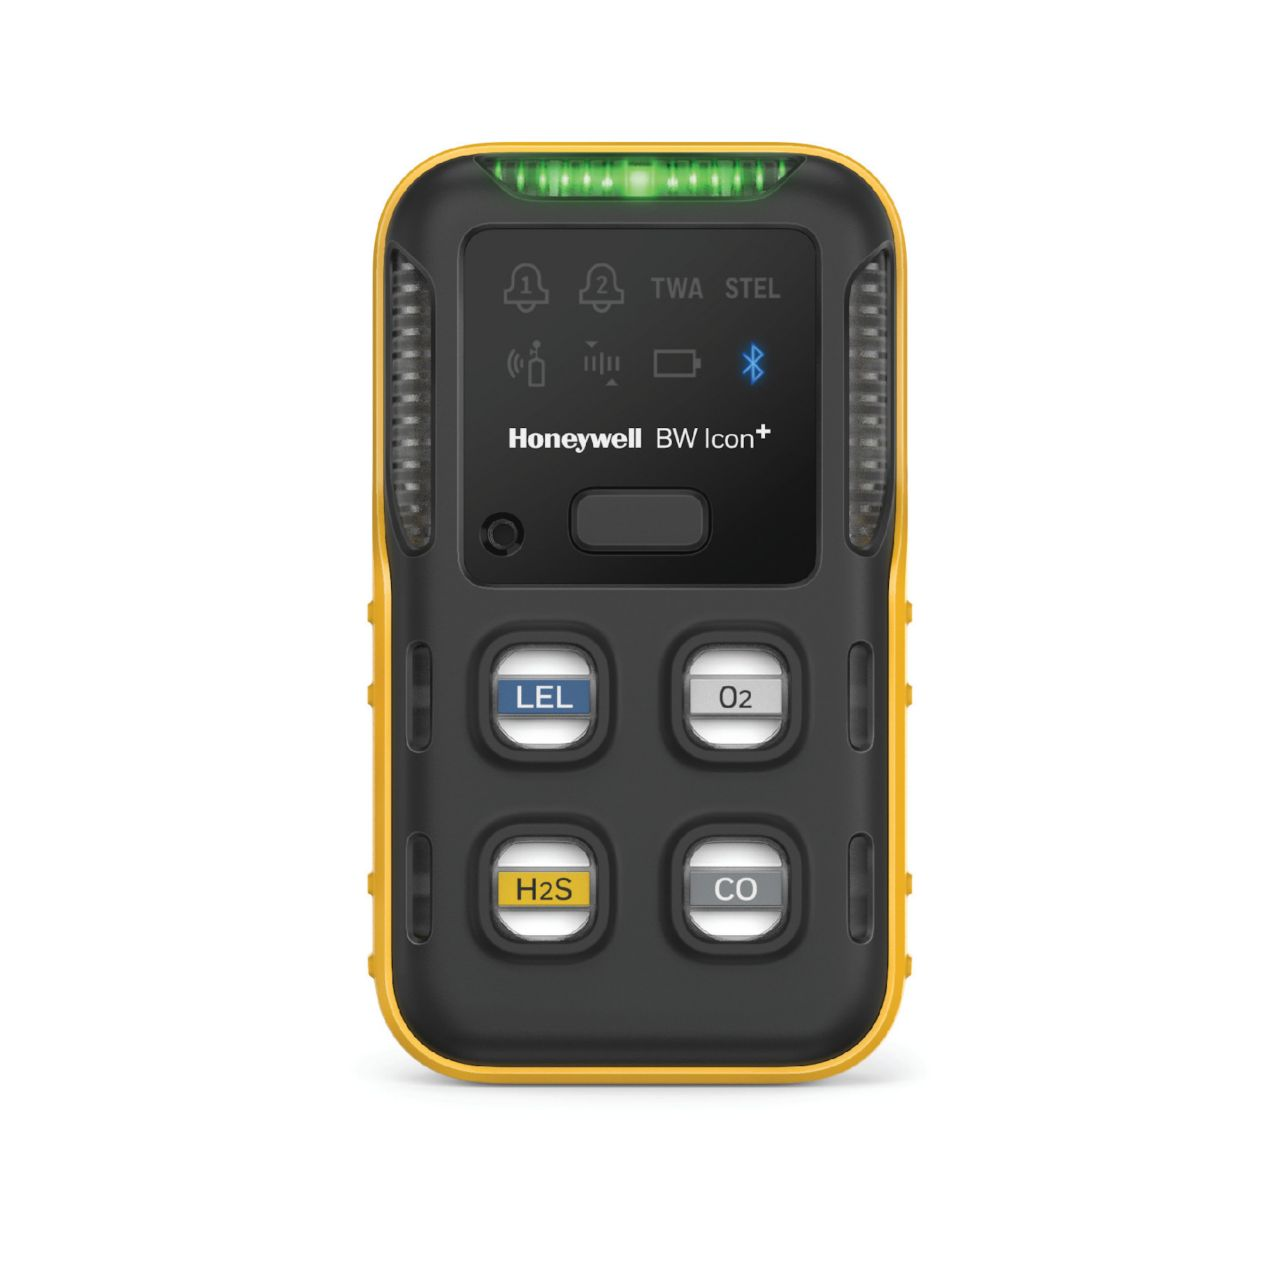 sps-his-bw-iconplus-front-yellow-lights-product-image-1